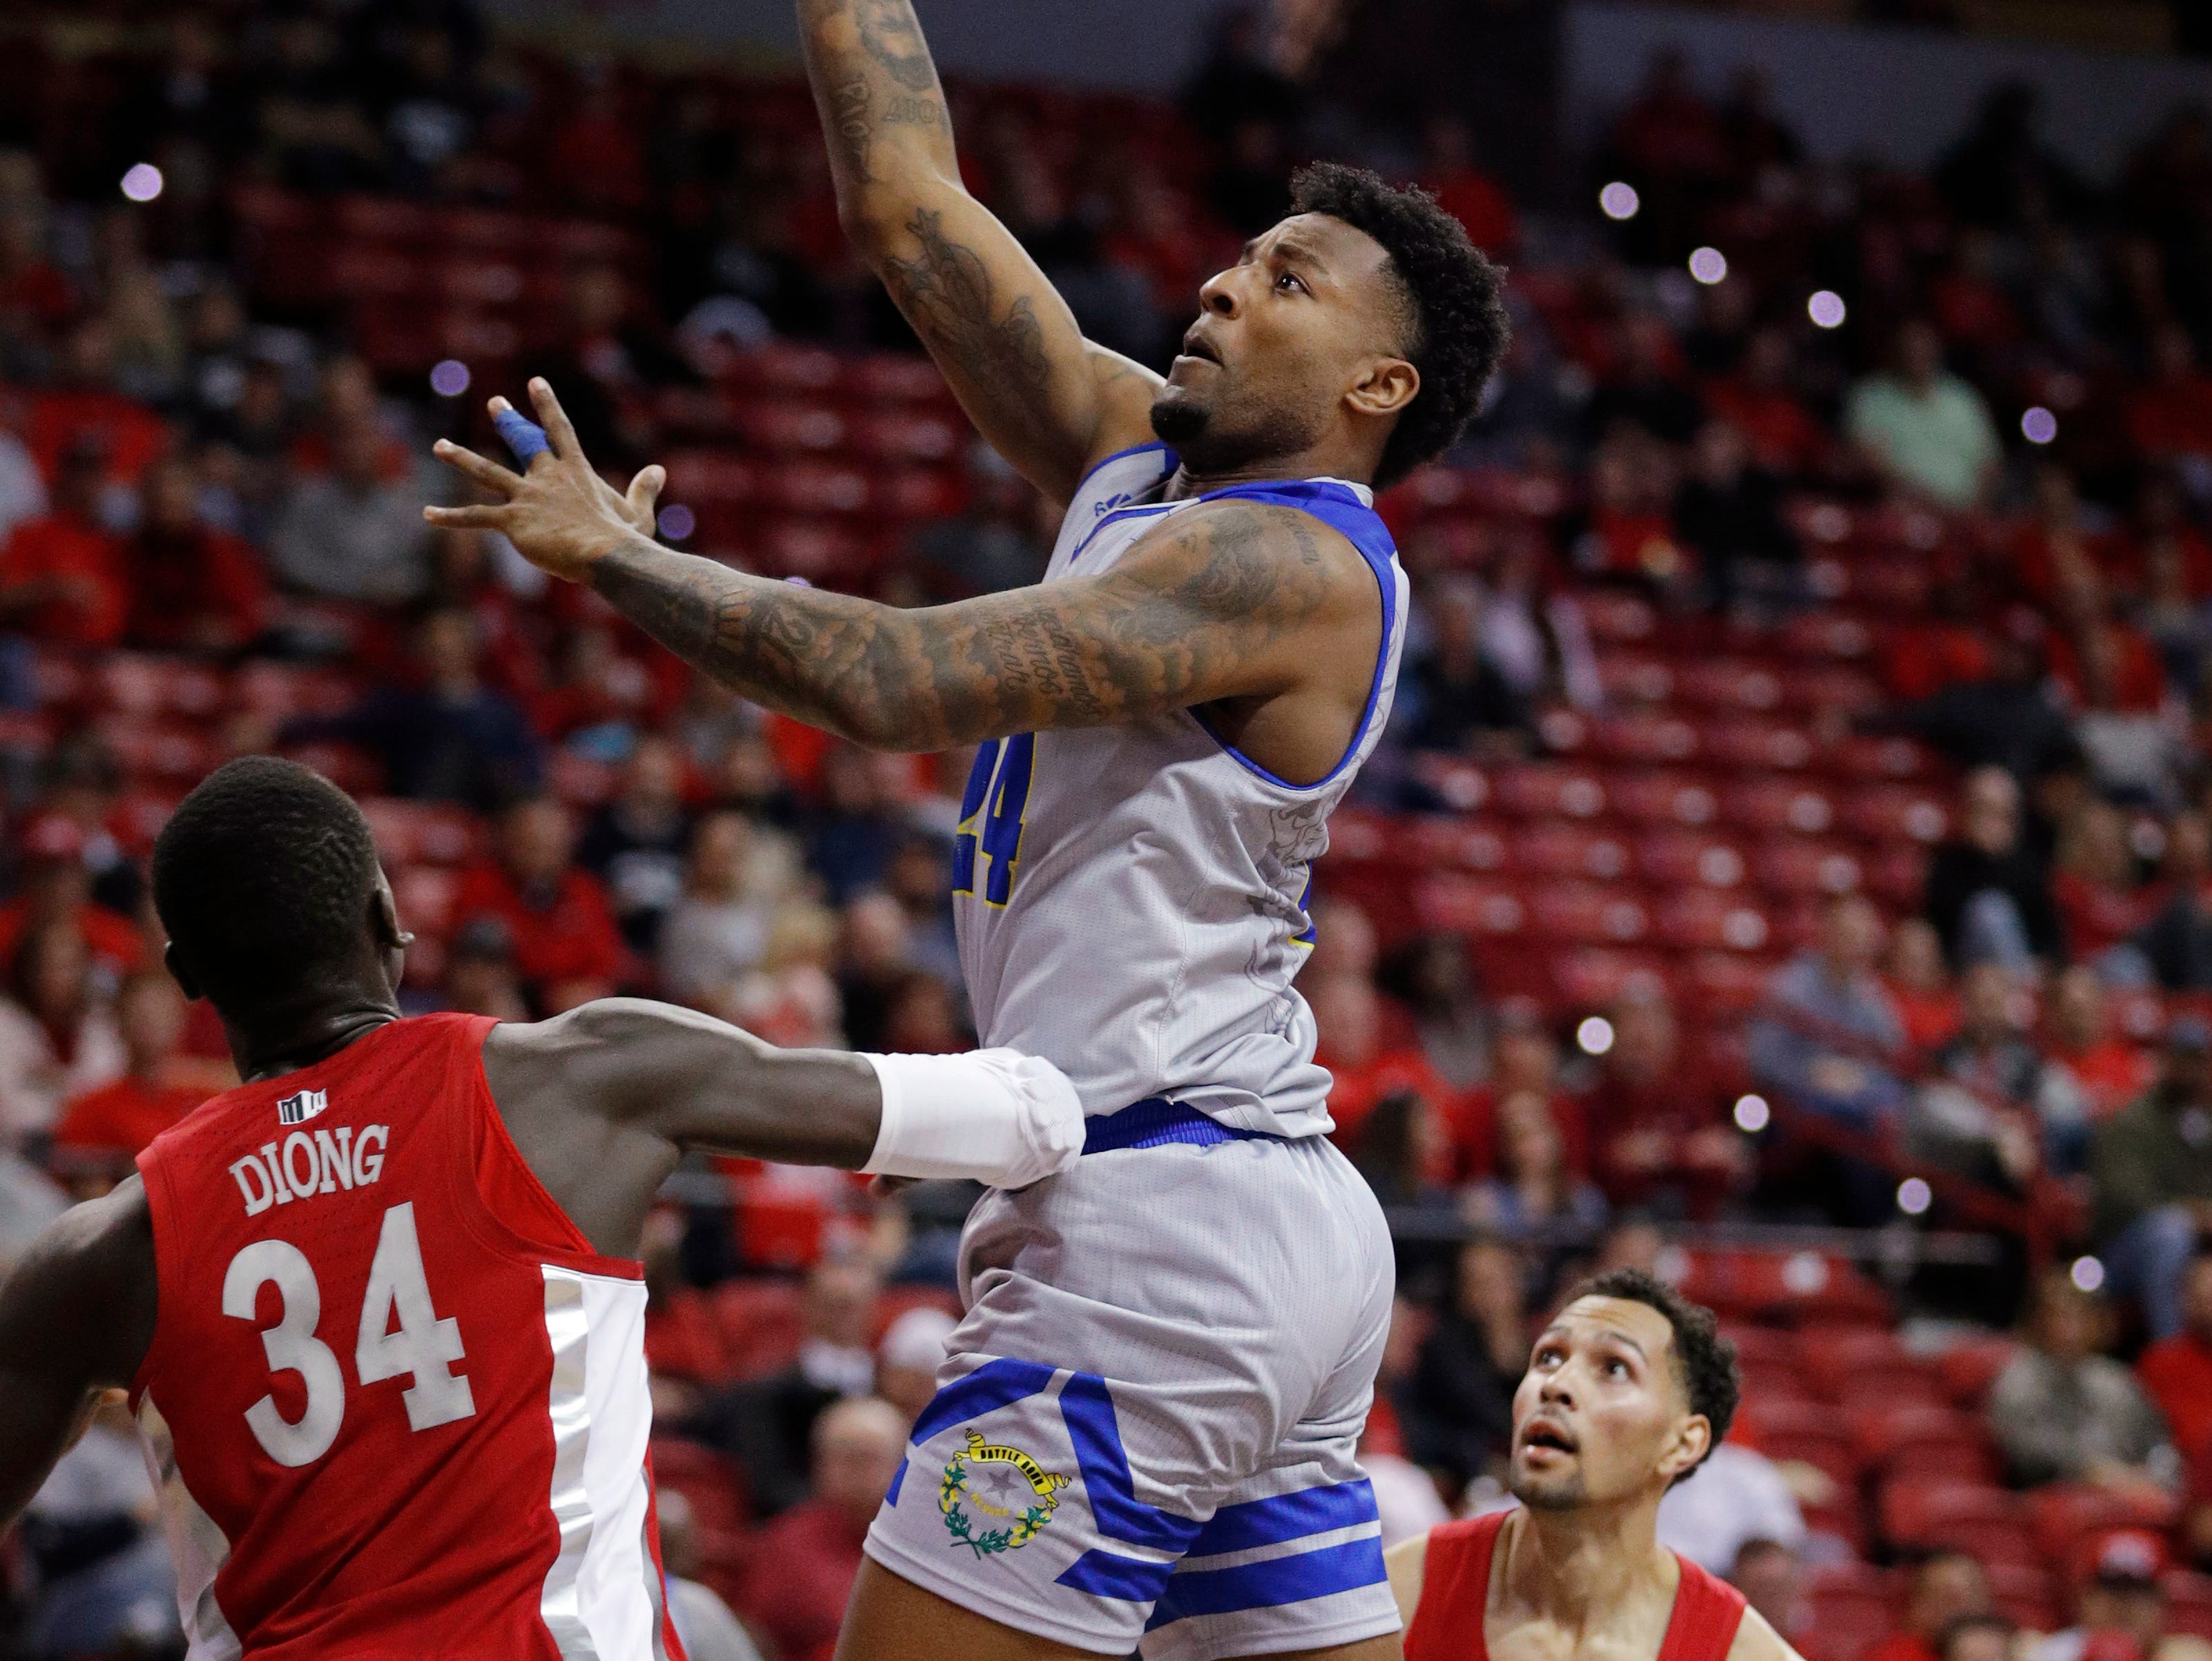 Nevada's Jordan Caroline shoots over UNLV's Cheikh Mbacke Diong during the second half of an NCAA college basketball game Tuesday, Jan. 29, 2019, in Las Vegas. (AP Photo/John Locher)